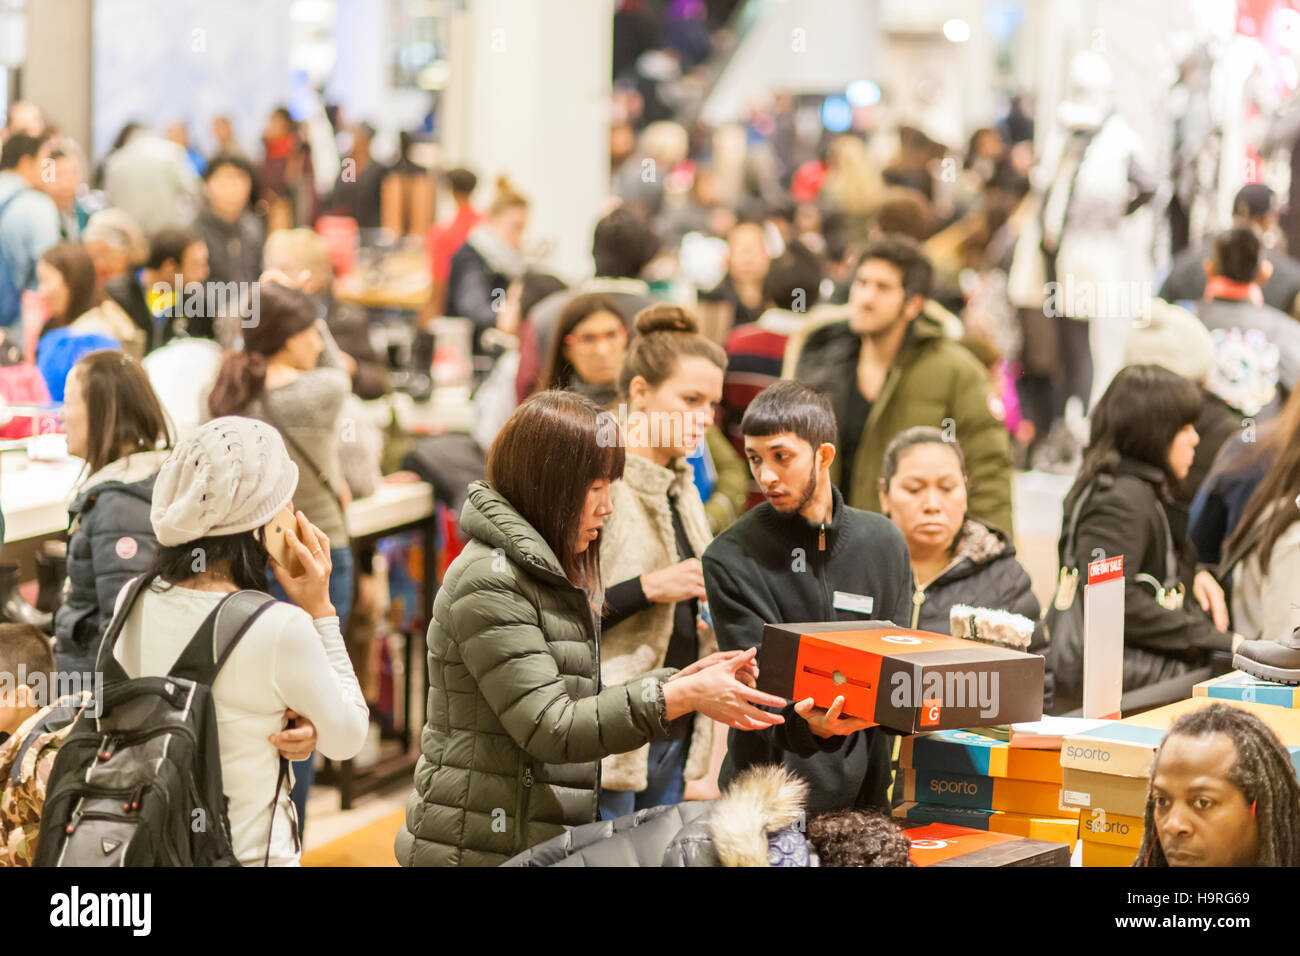 Black Friday 2016 Usa New York Usa 25th November 2016 Shoppers In The Enormous Shoe